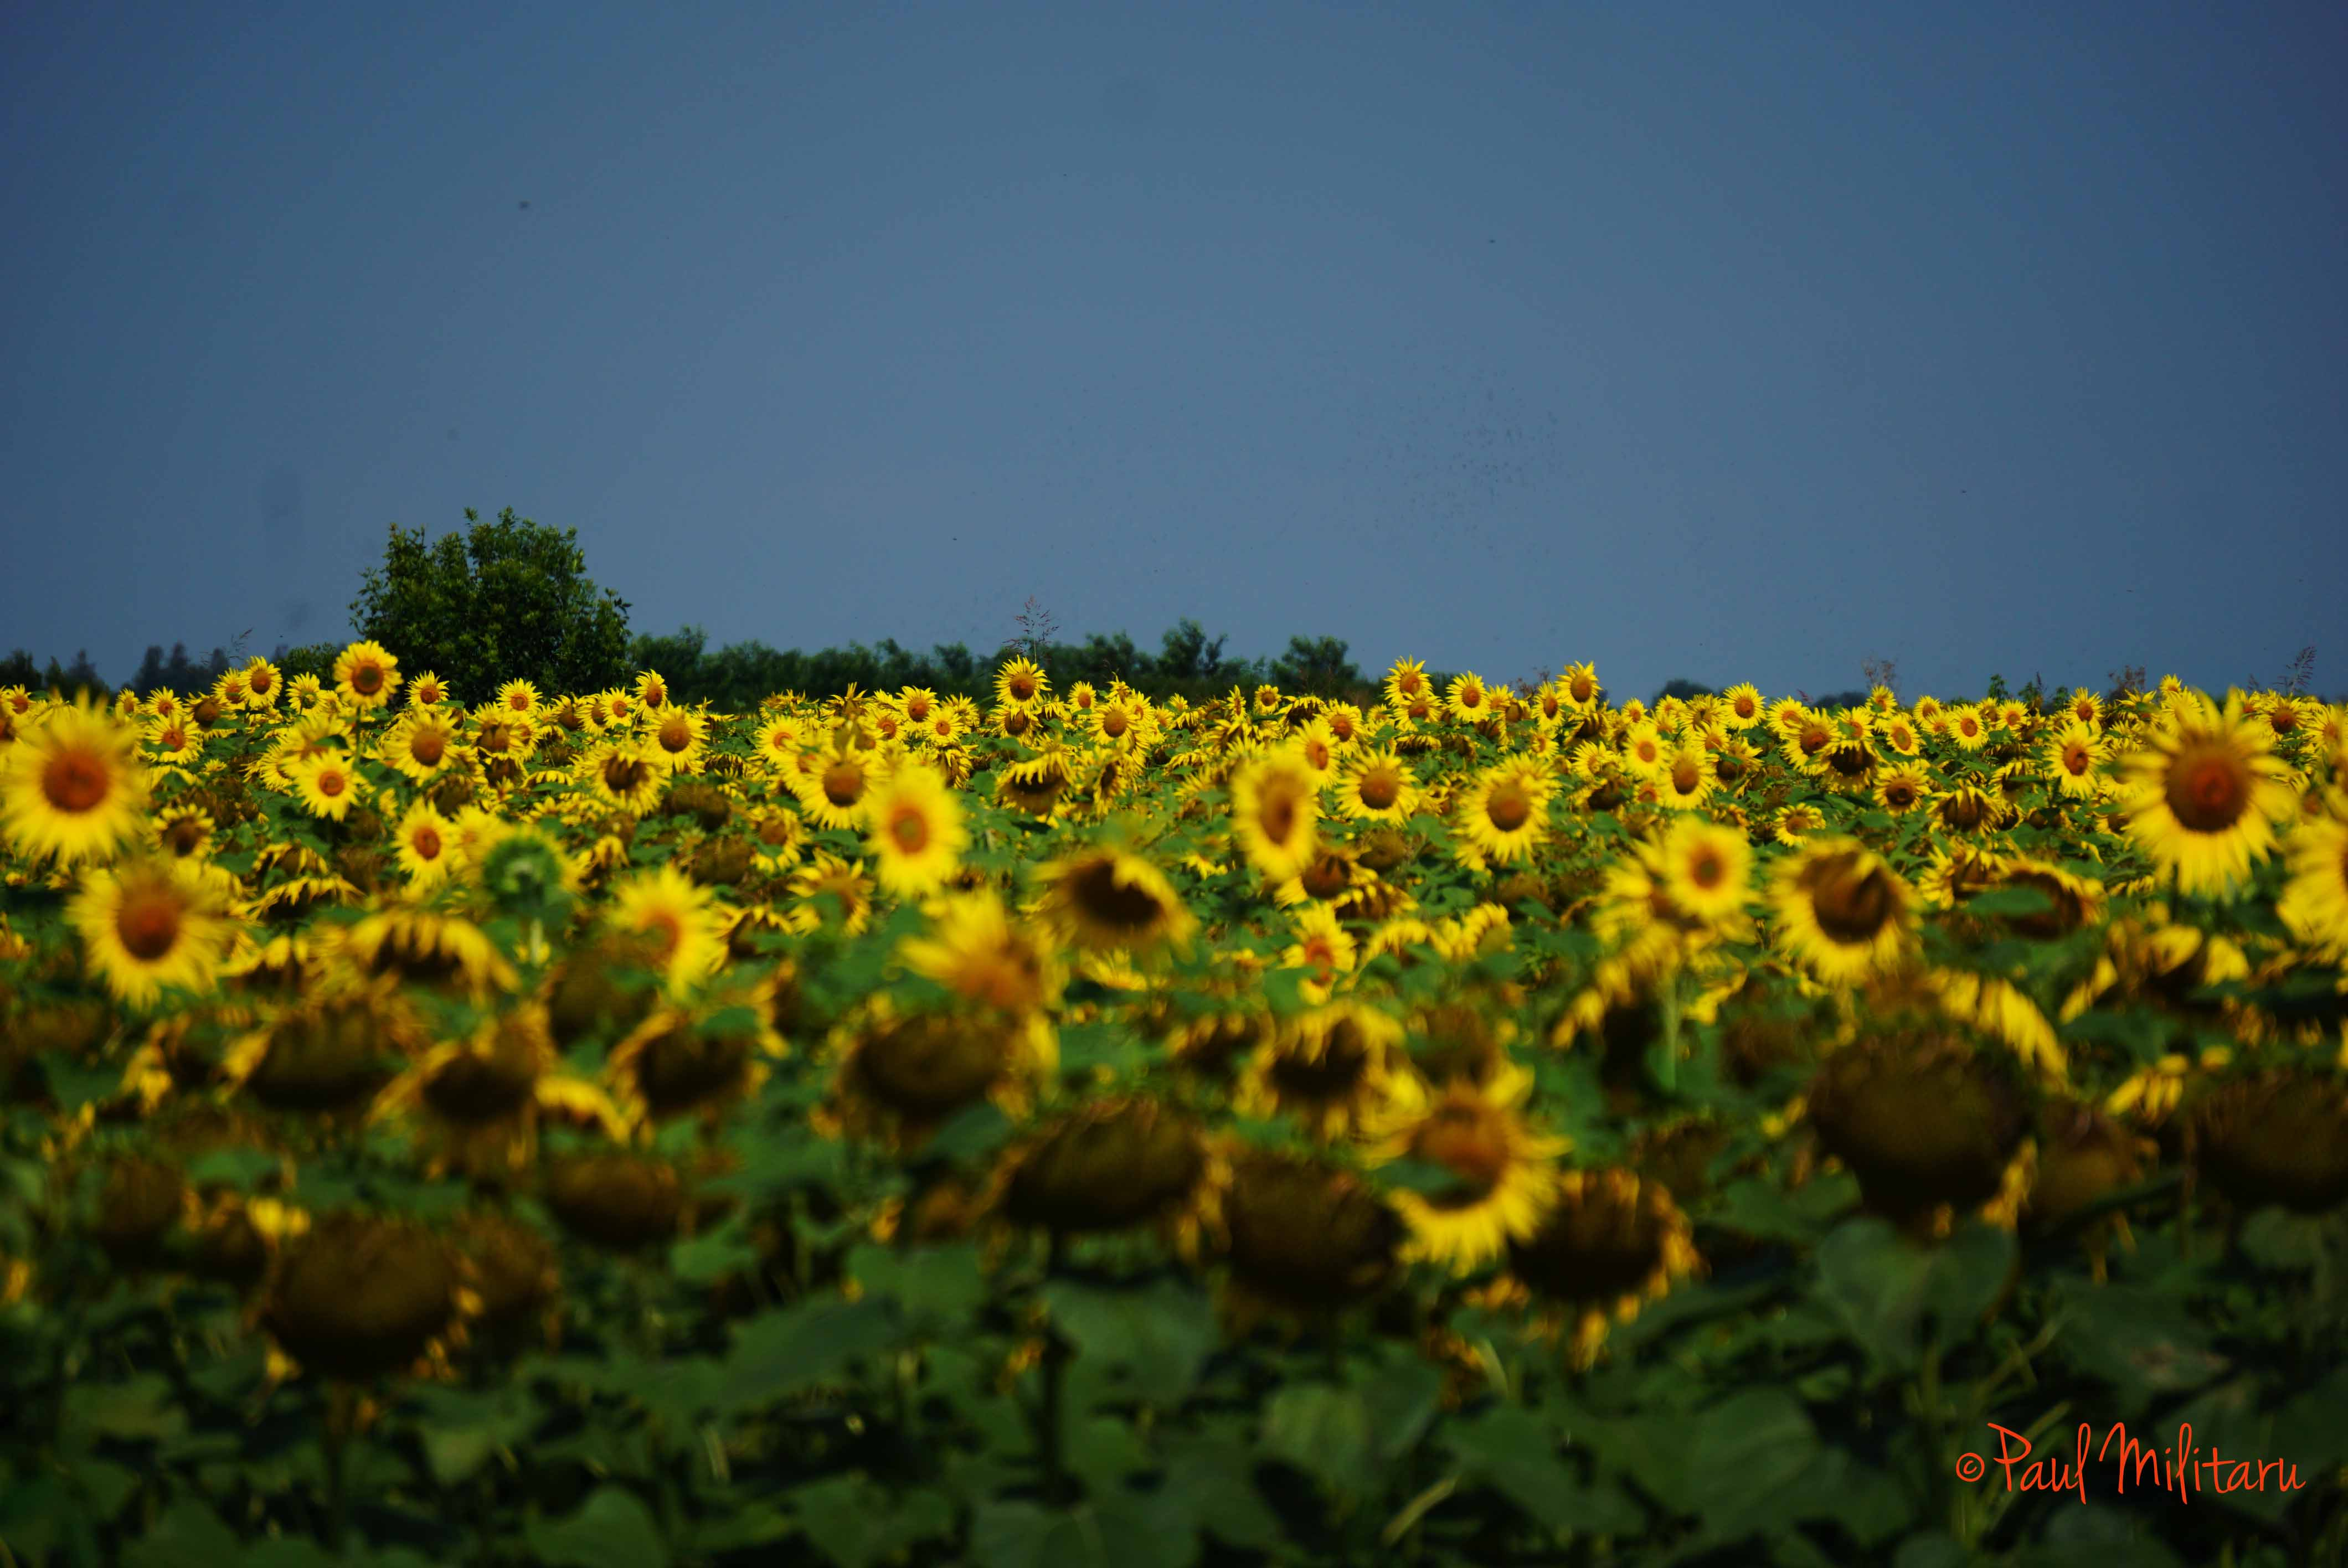 sunflower field | Paul Militaru